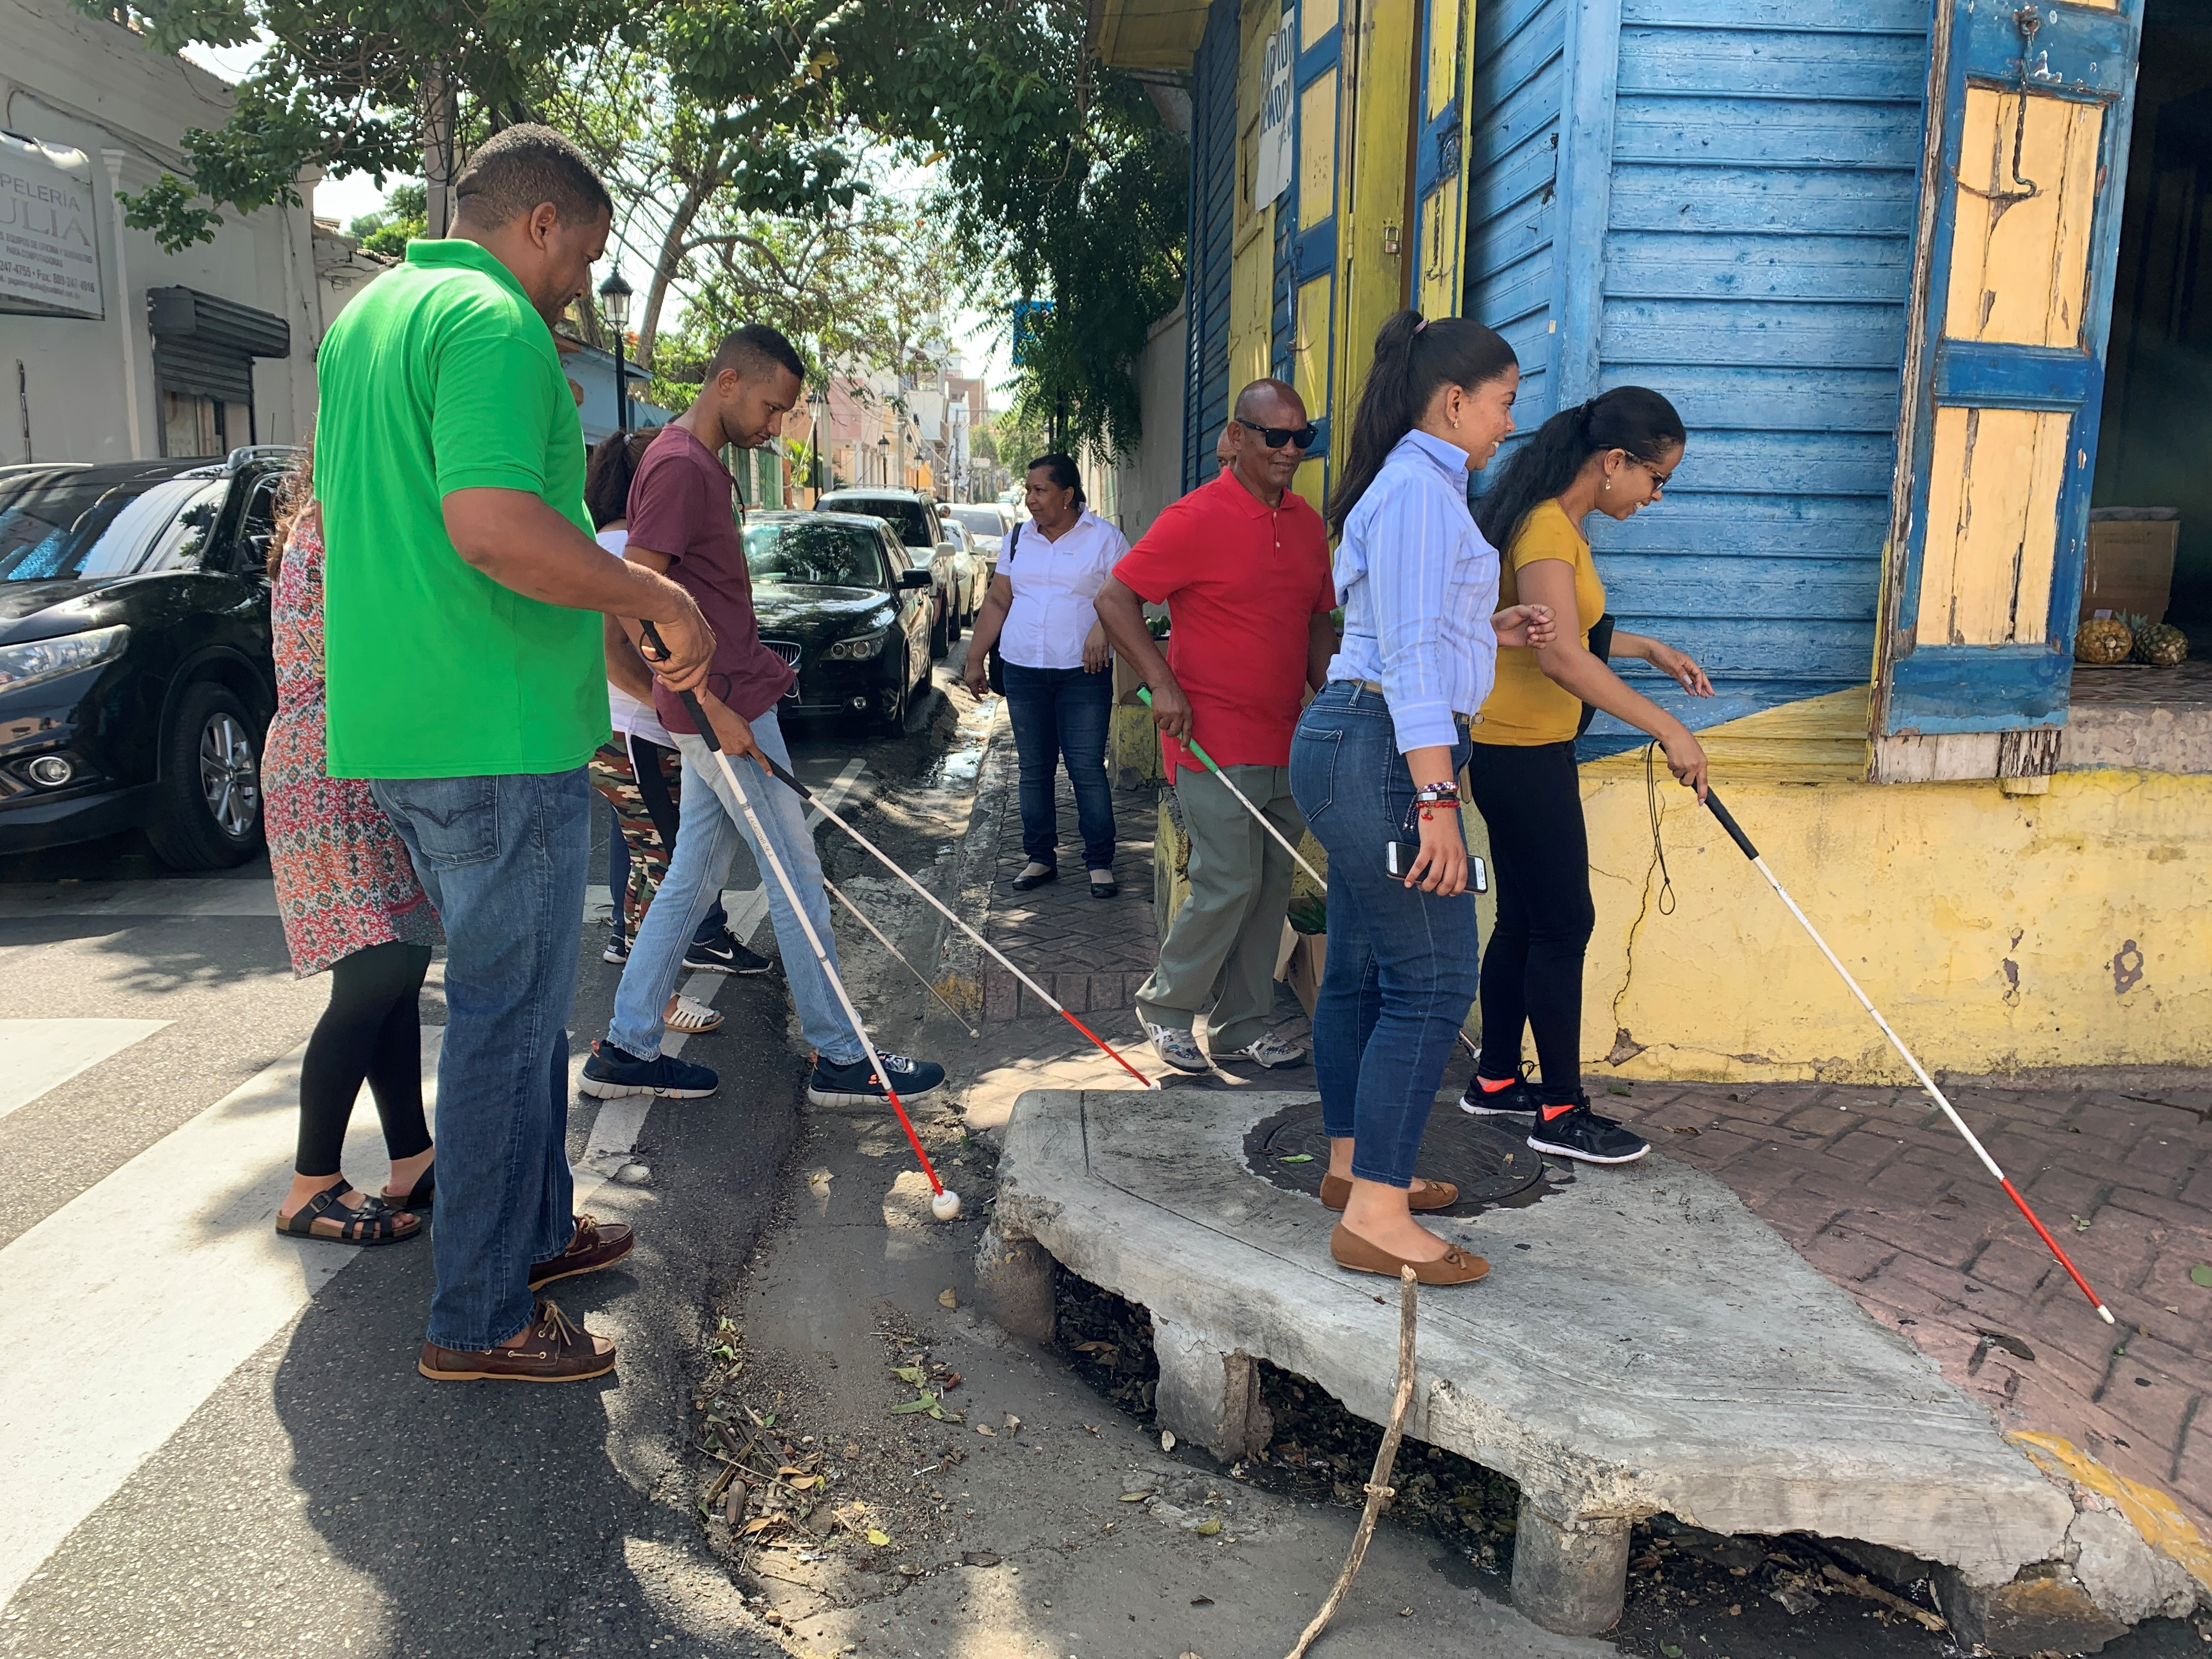 Volunteers with visual disabilities evaluate a neighborhood where a school for the blind is located to identify transportation accessibility challenges. (Natalia Coachman/IDB)